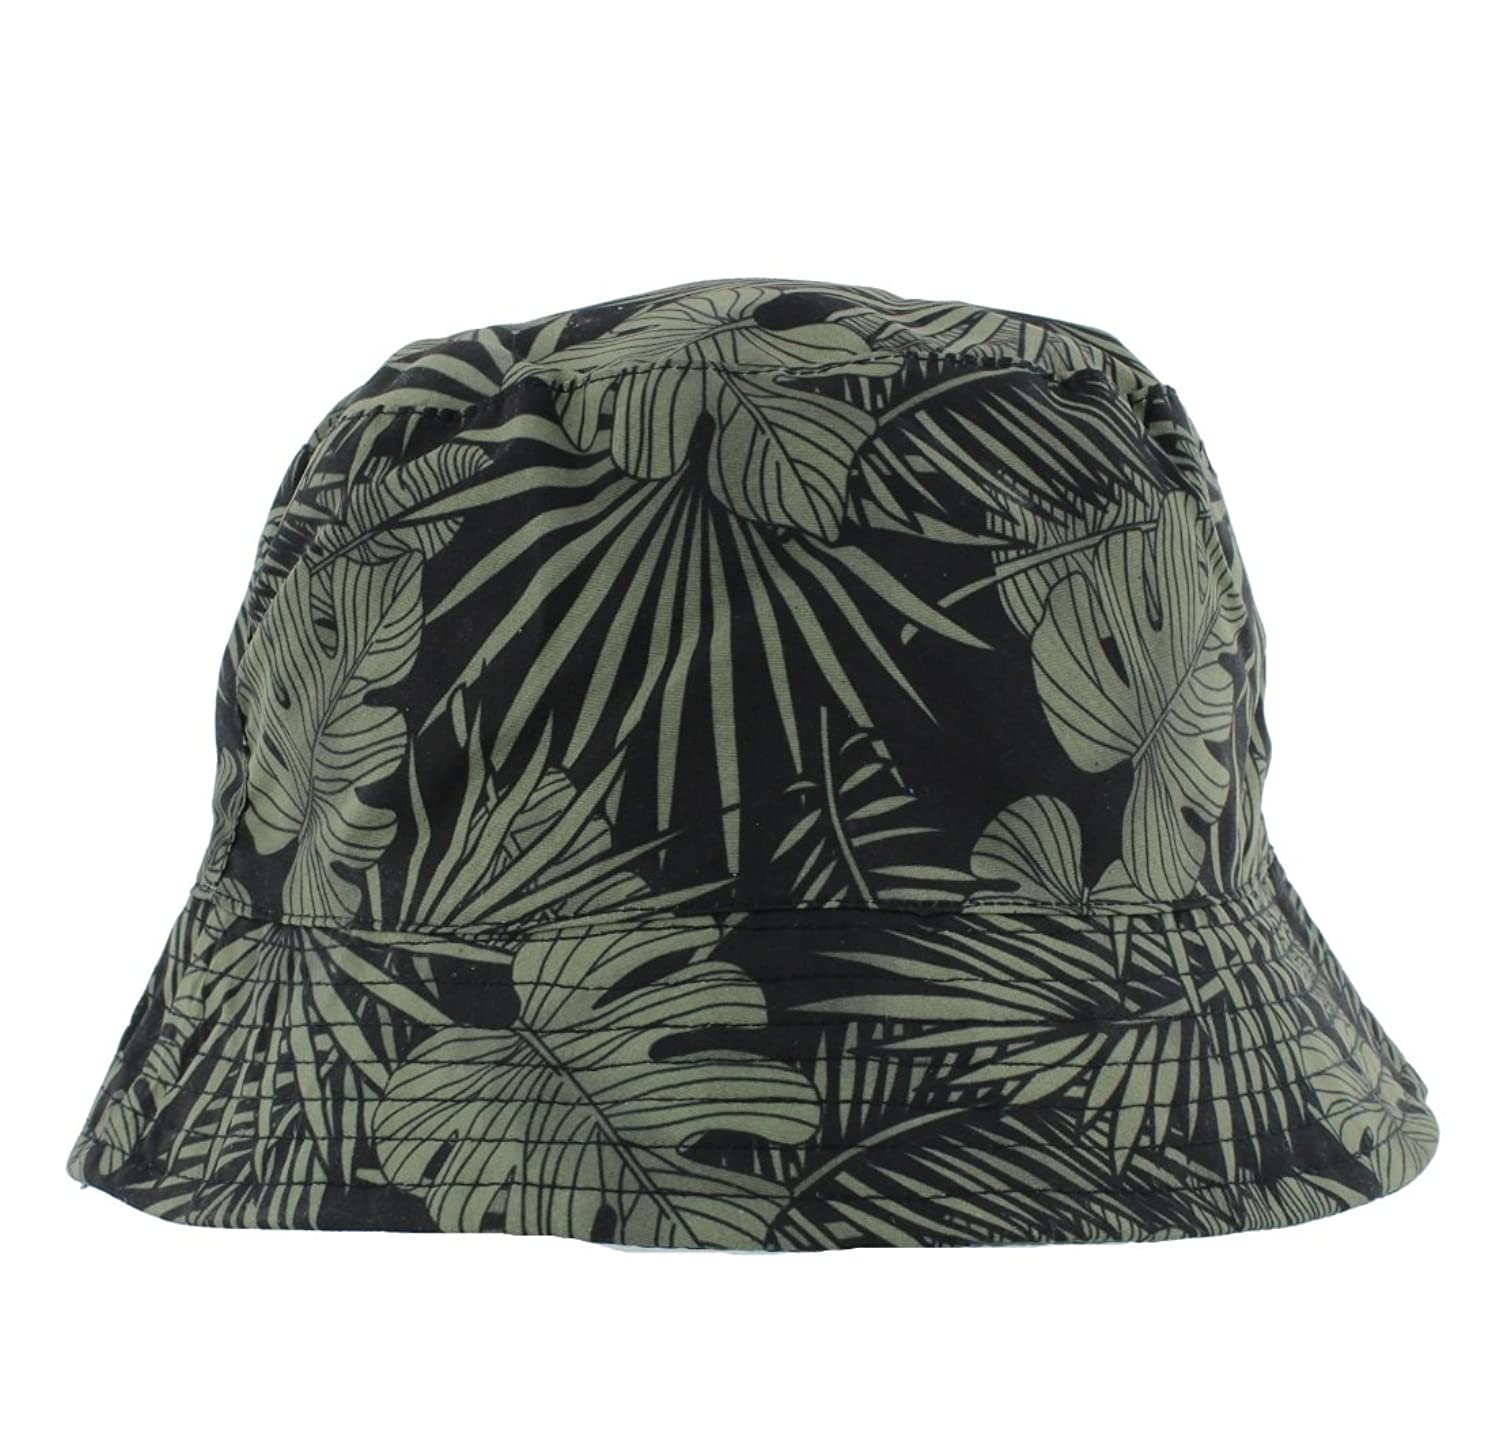 A1389 The Hat Company Ladies Summer Floral Bucket Hat Pale Blue or Pink